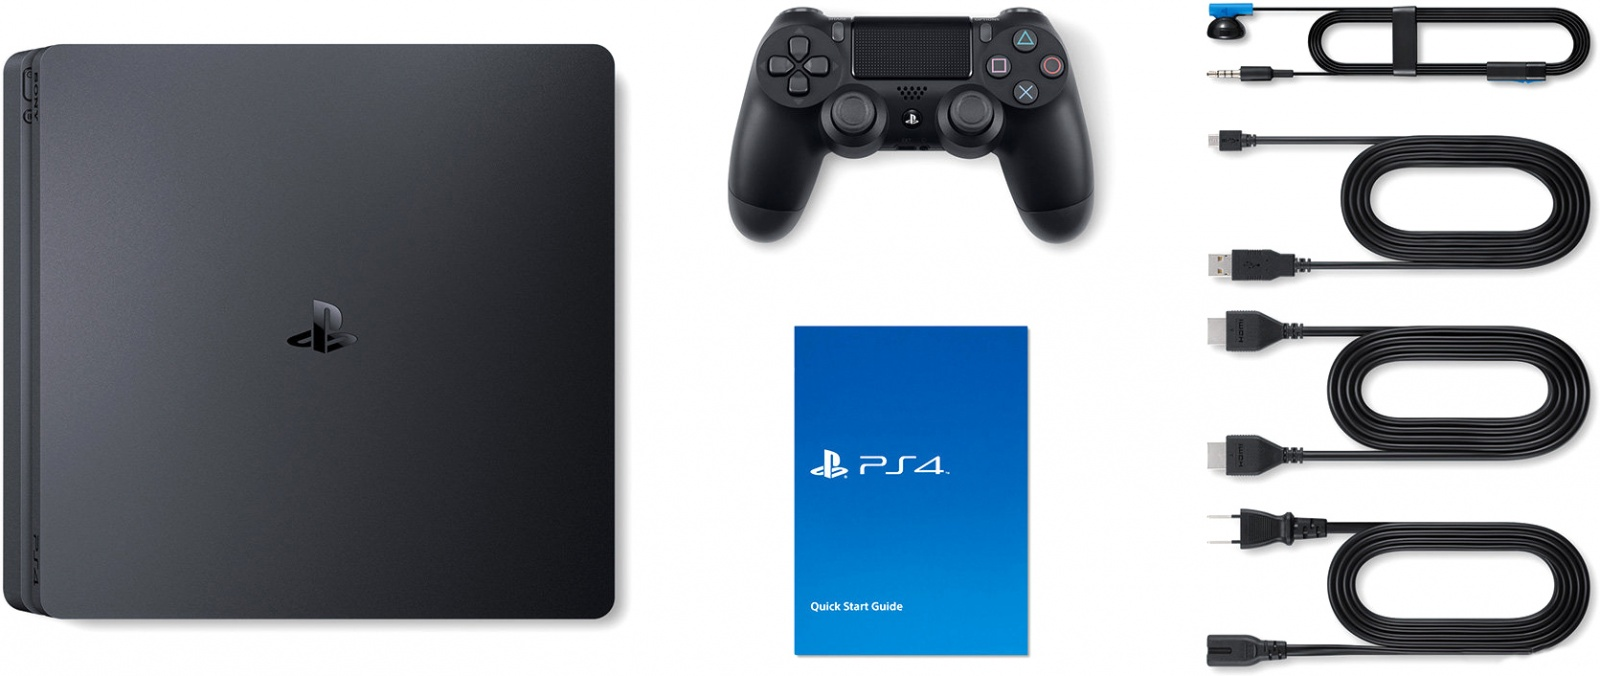 комплект шнуров для Sony PlayStation 4 Slim